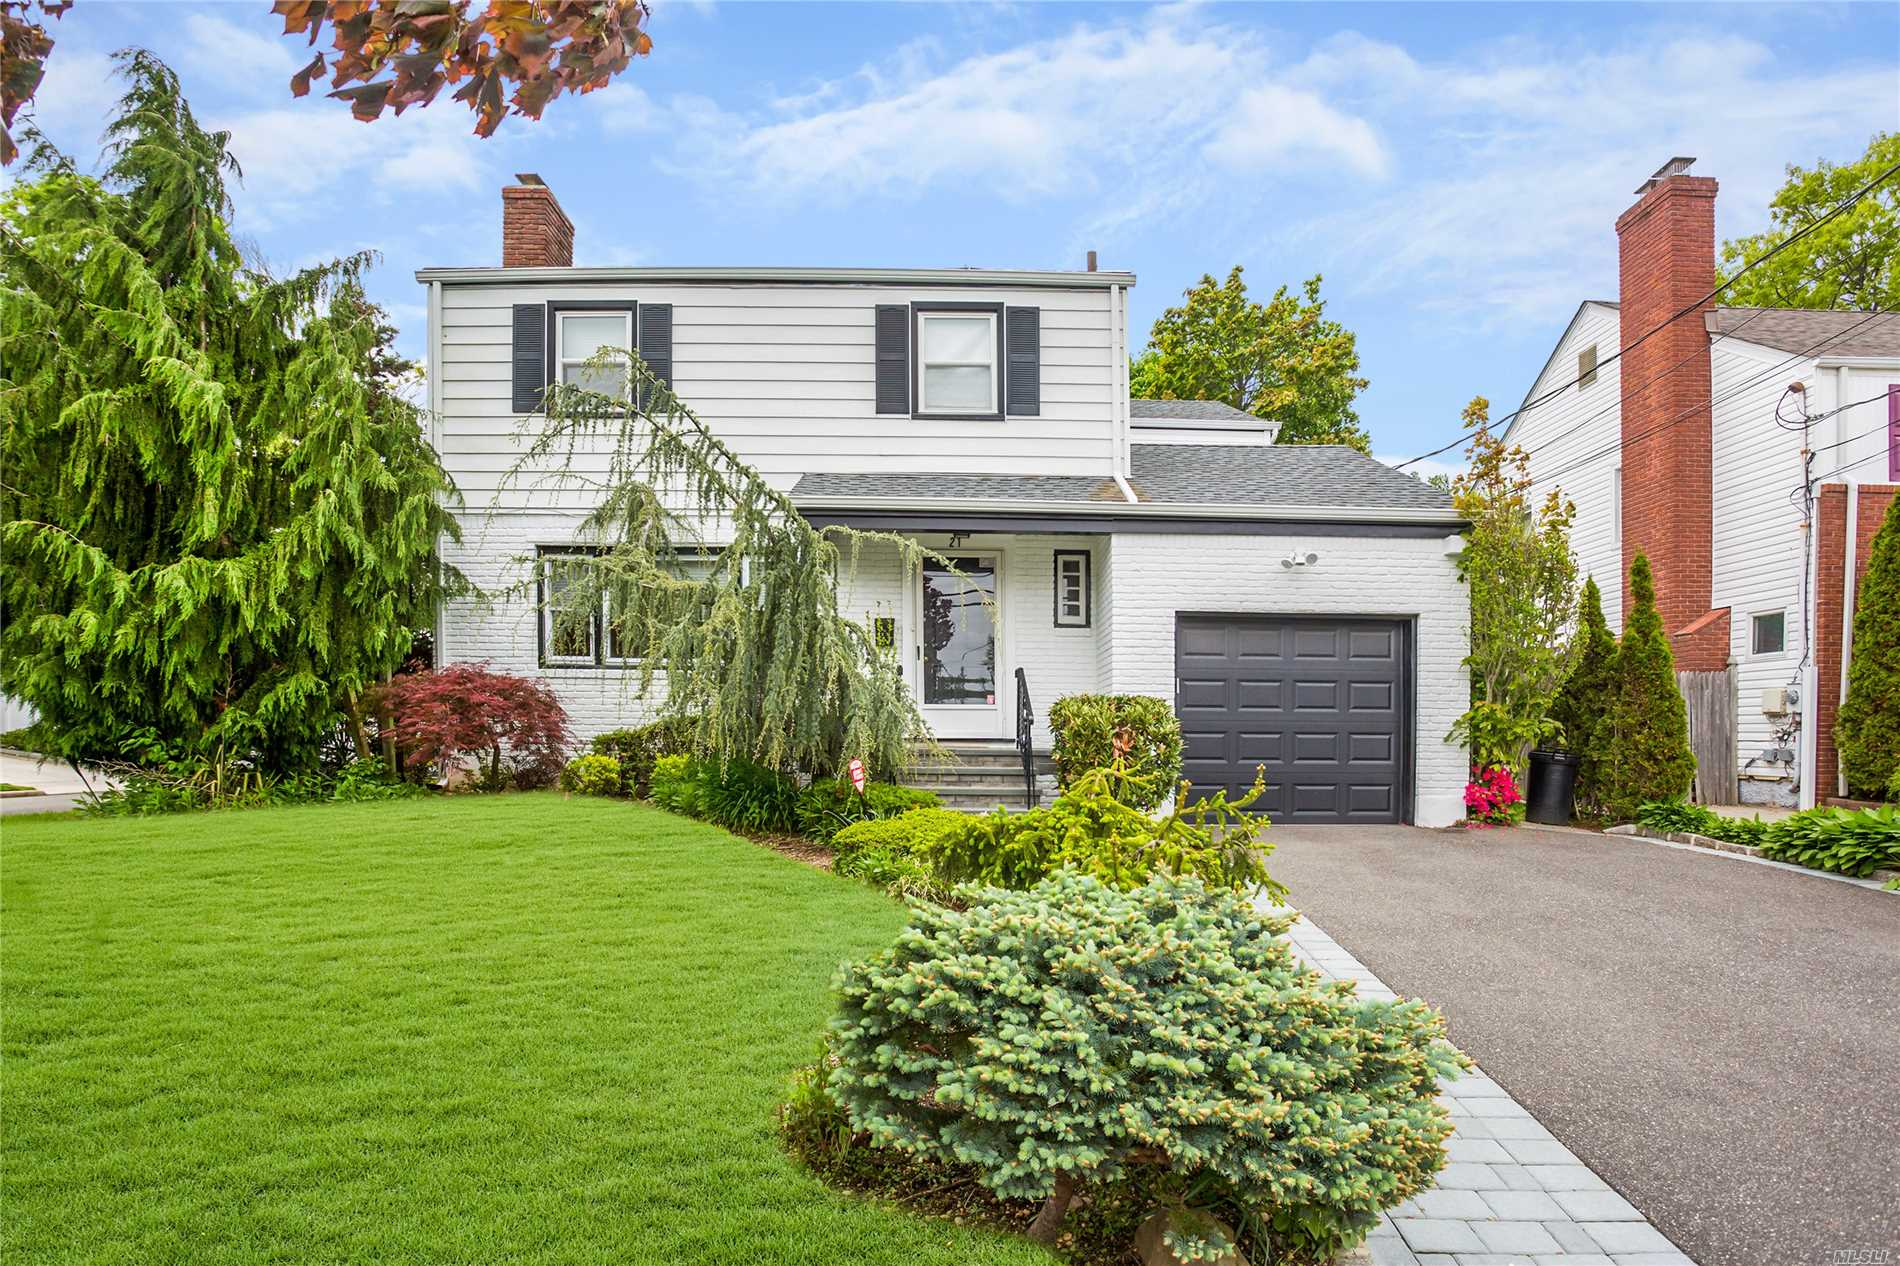 A Rare Gem, Pristine Colonial, 4 Br's On 2nd Fl, New Baths, New Kitchen, New Roof, Newly Finished Basement, New Led Lighting, Beautifully Landscaped, New Driveway, Nothing To Do But Move Right In! Walking Distance To Lirr Low Taxes!!!!